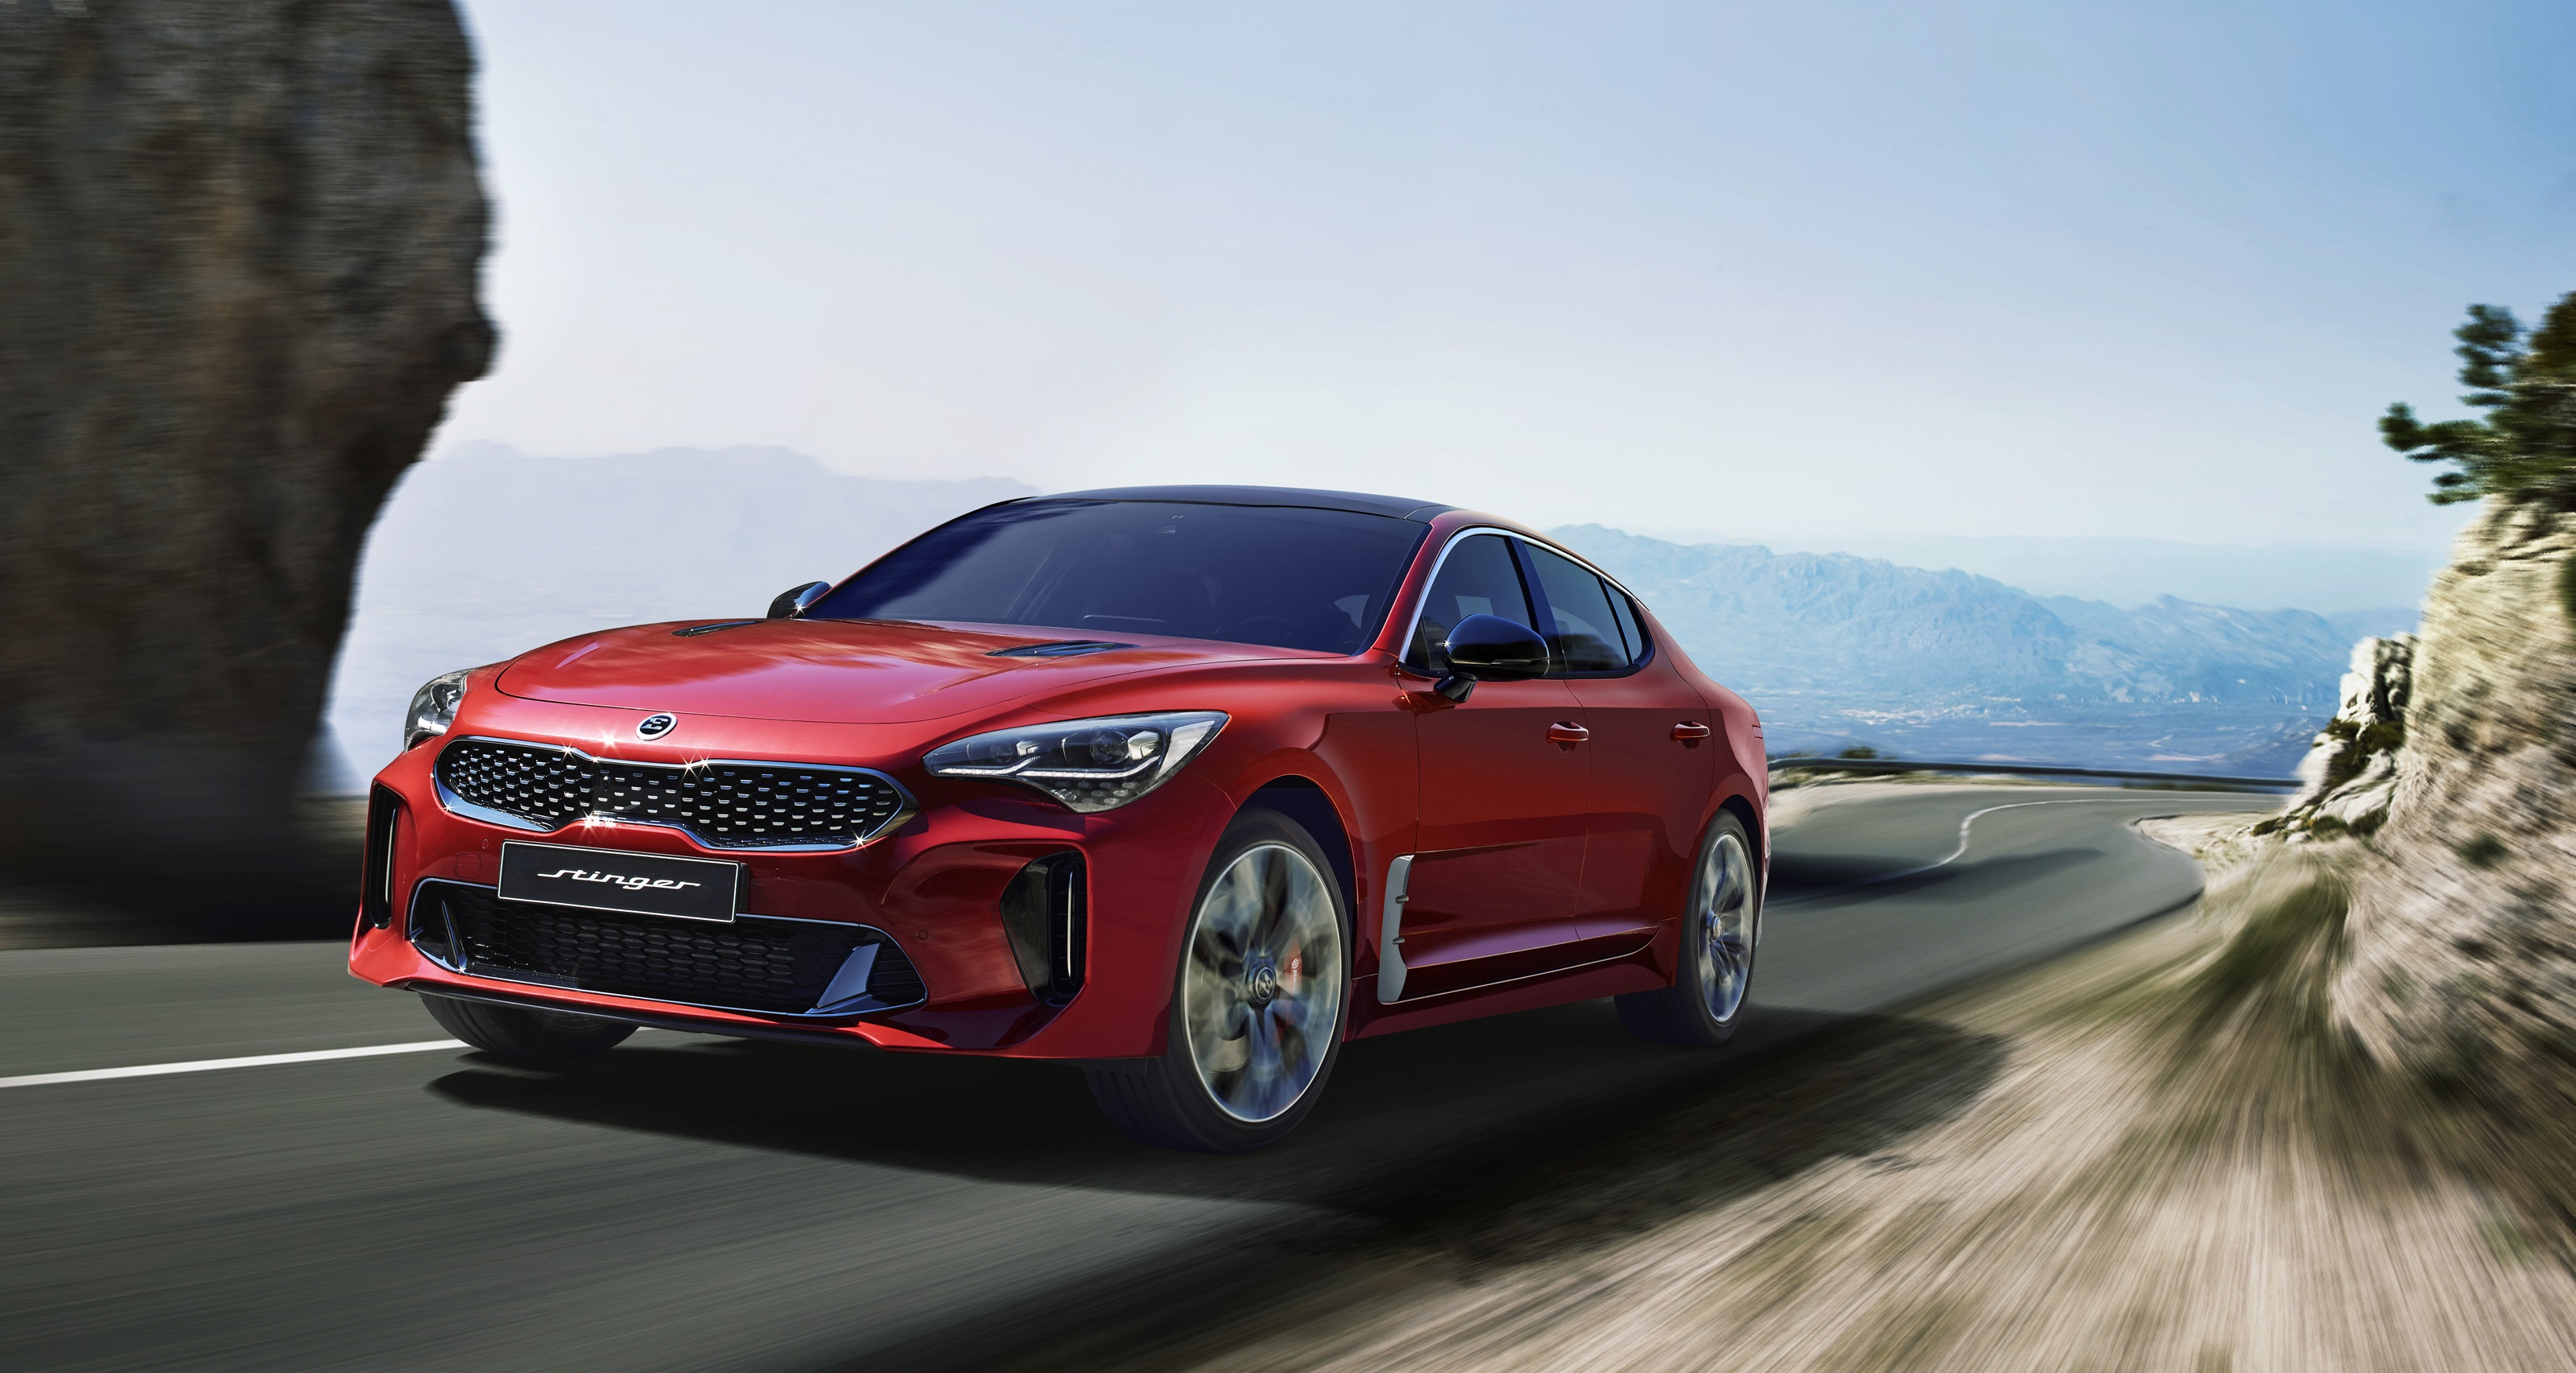 Kia Motors Launches Its first Performance Sedan 'Stinger'